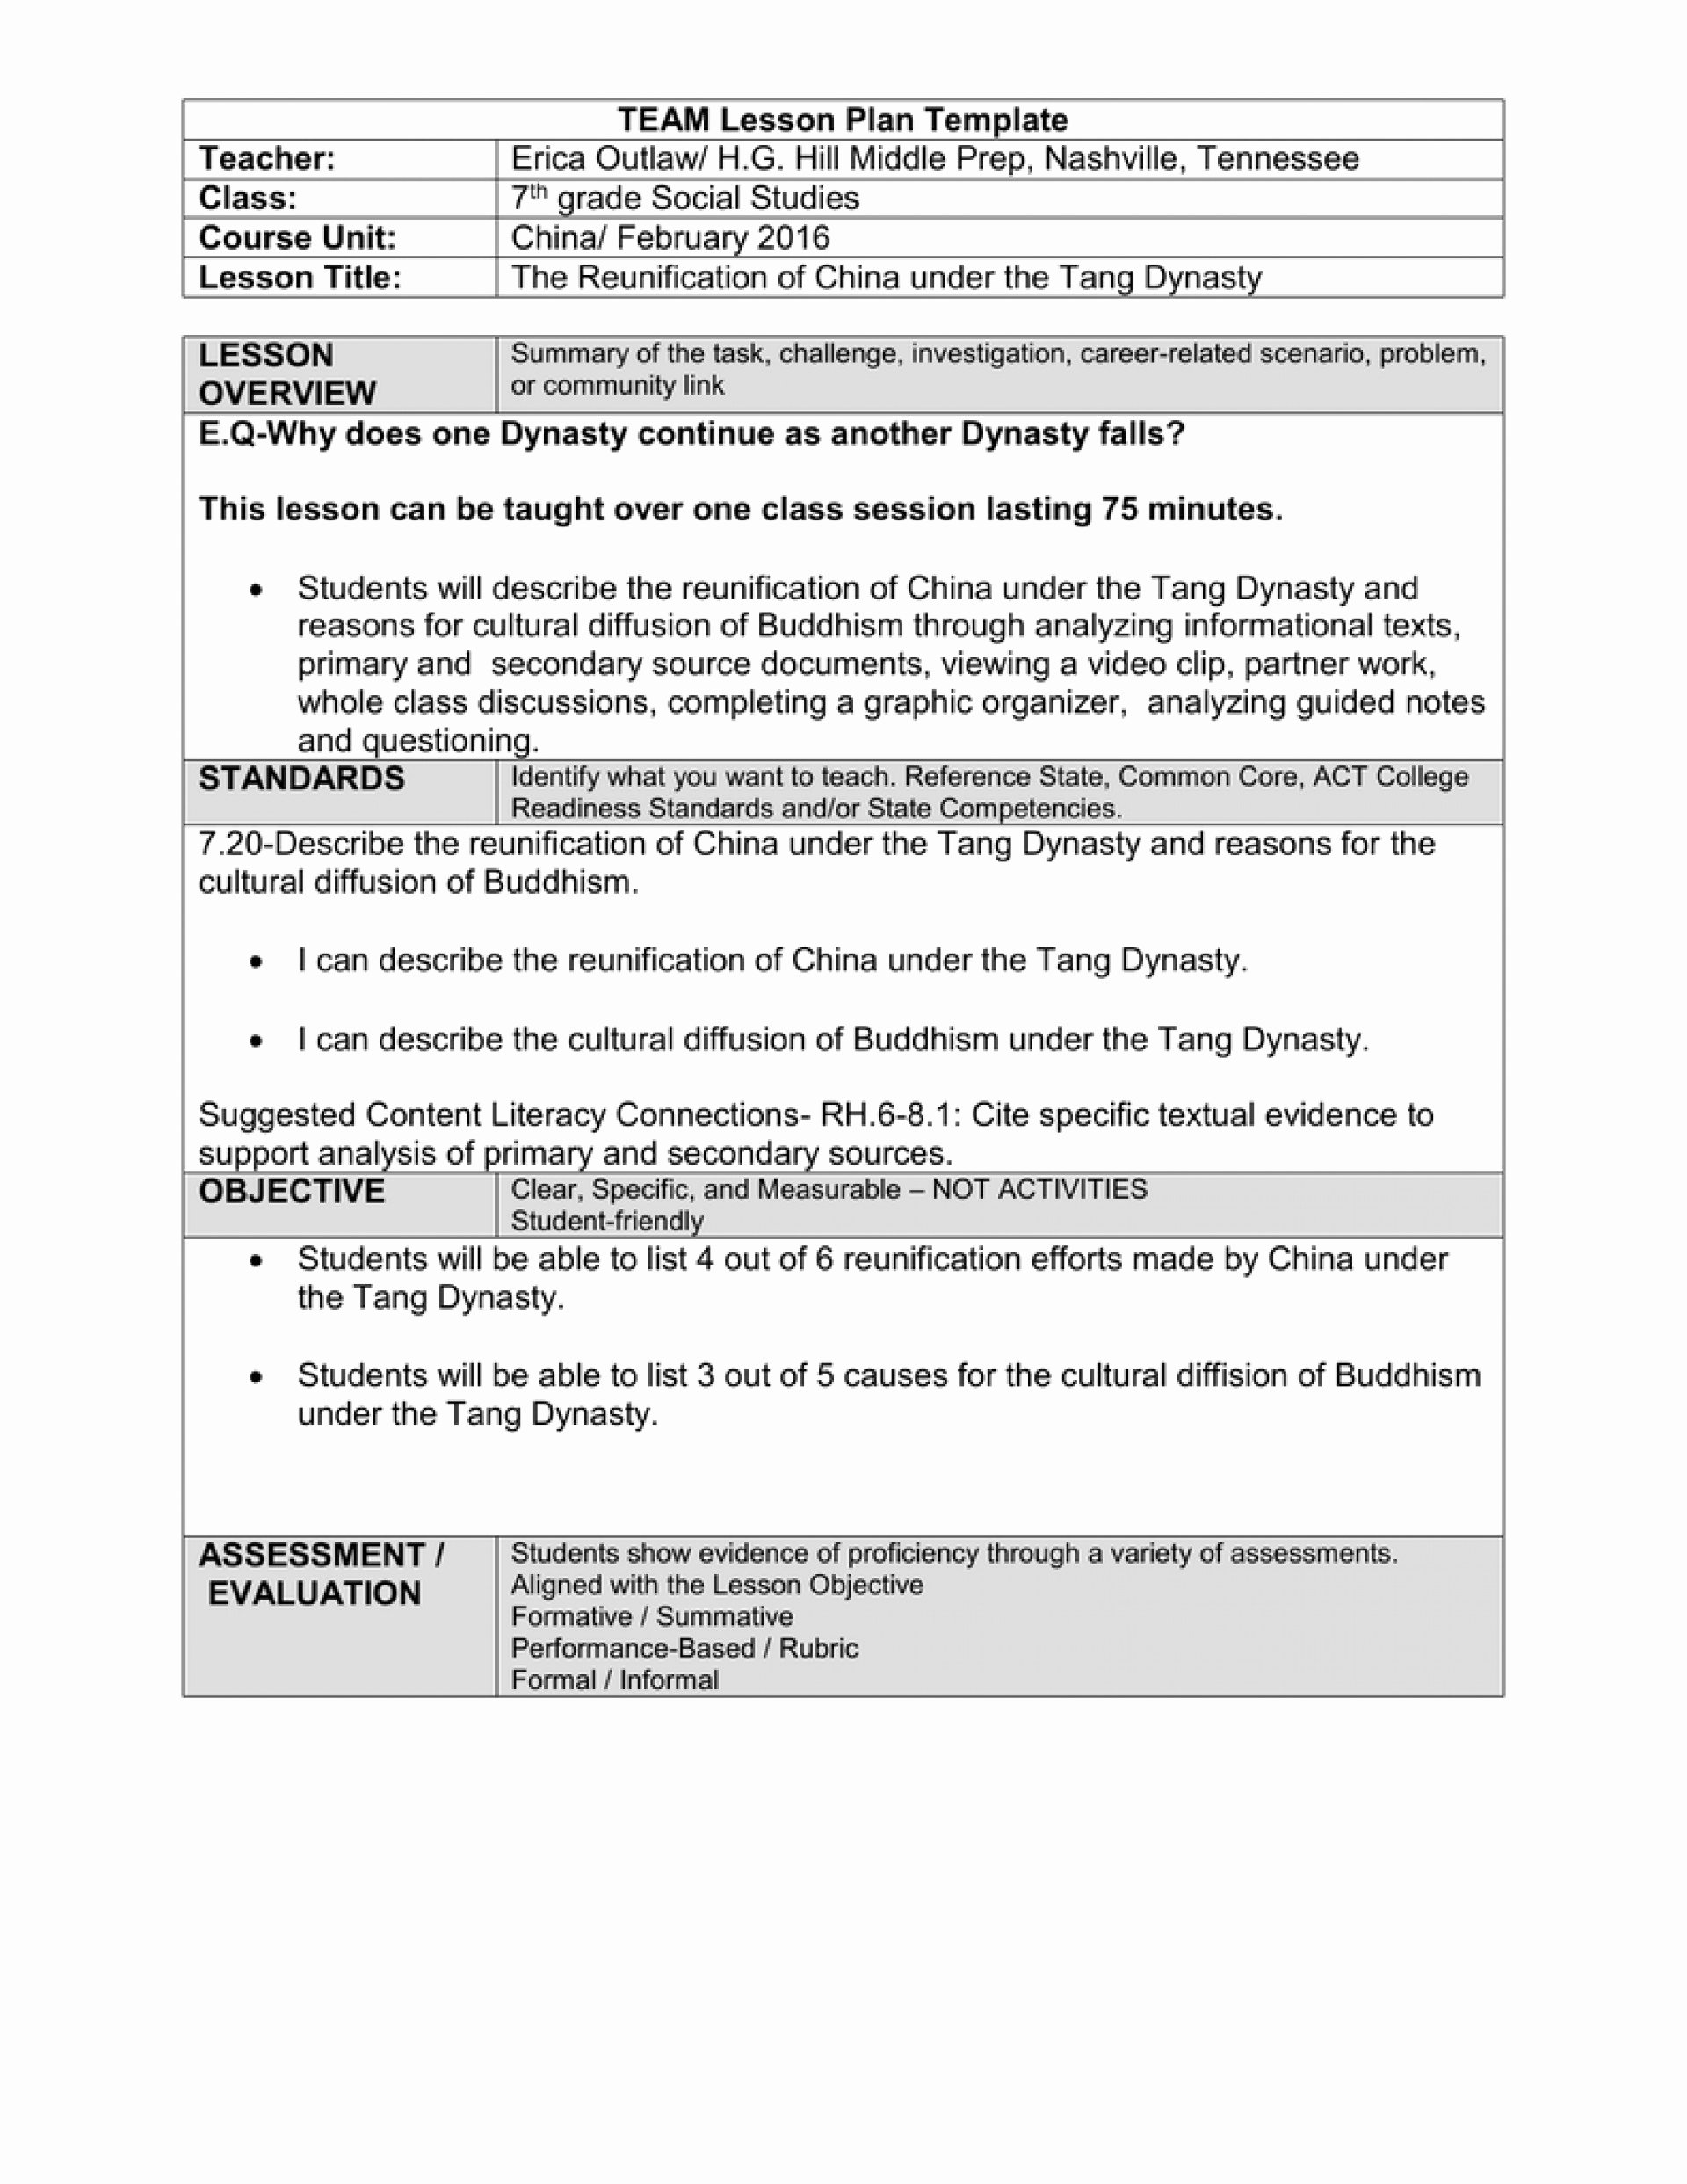 Team Lesson Plan Template Lovely 003 Tennessee Lesson Plan Template Team Design Tinypetition